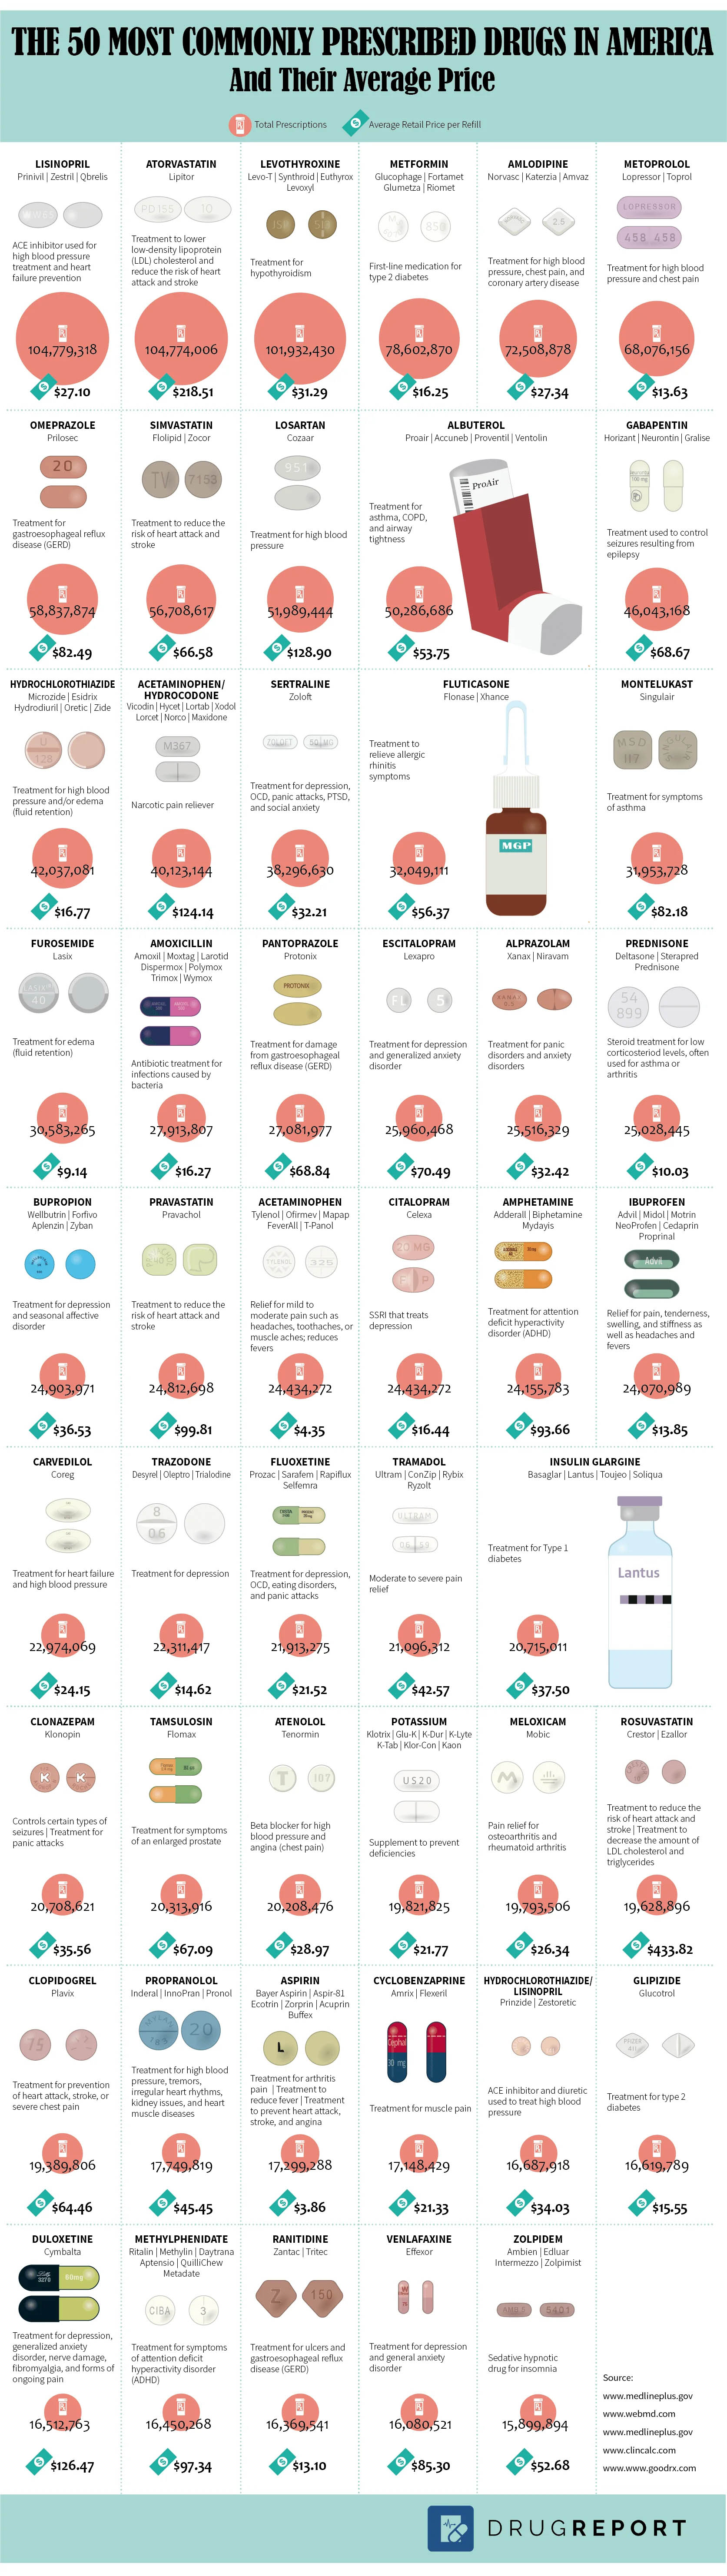 The 50 Most Commonly Prescribed Drugs in America and Their Average Price